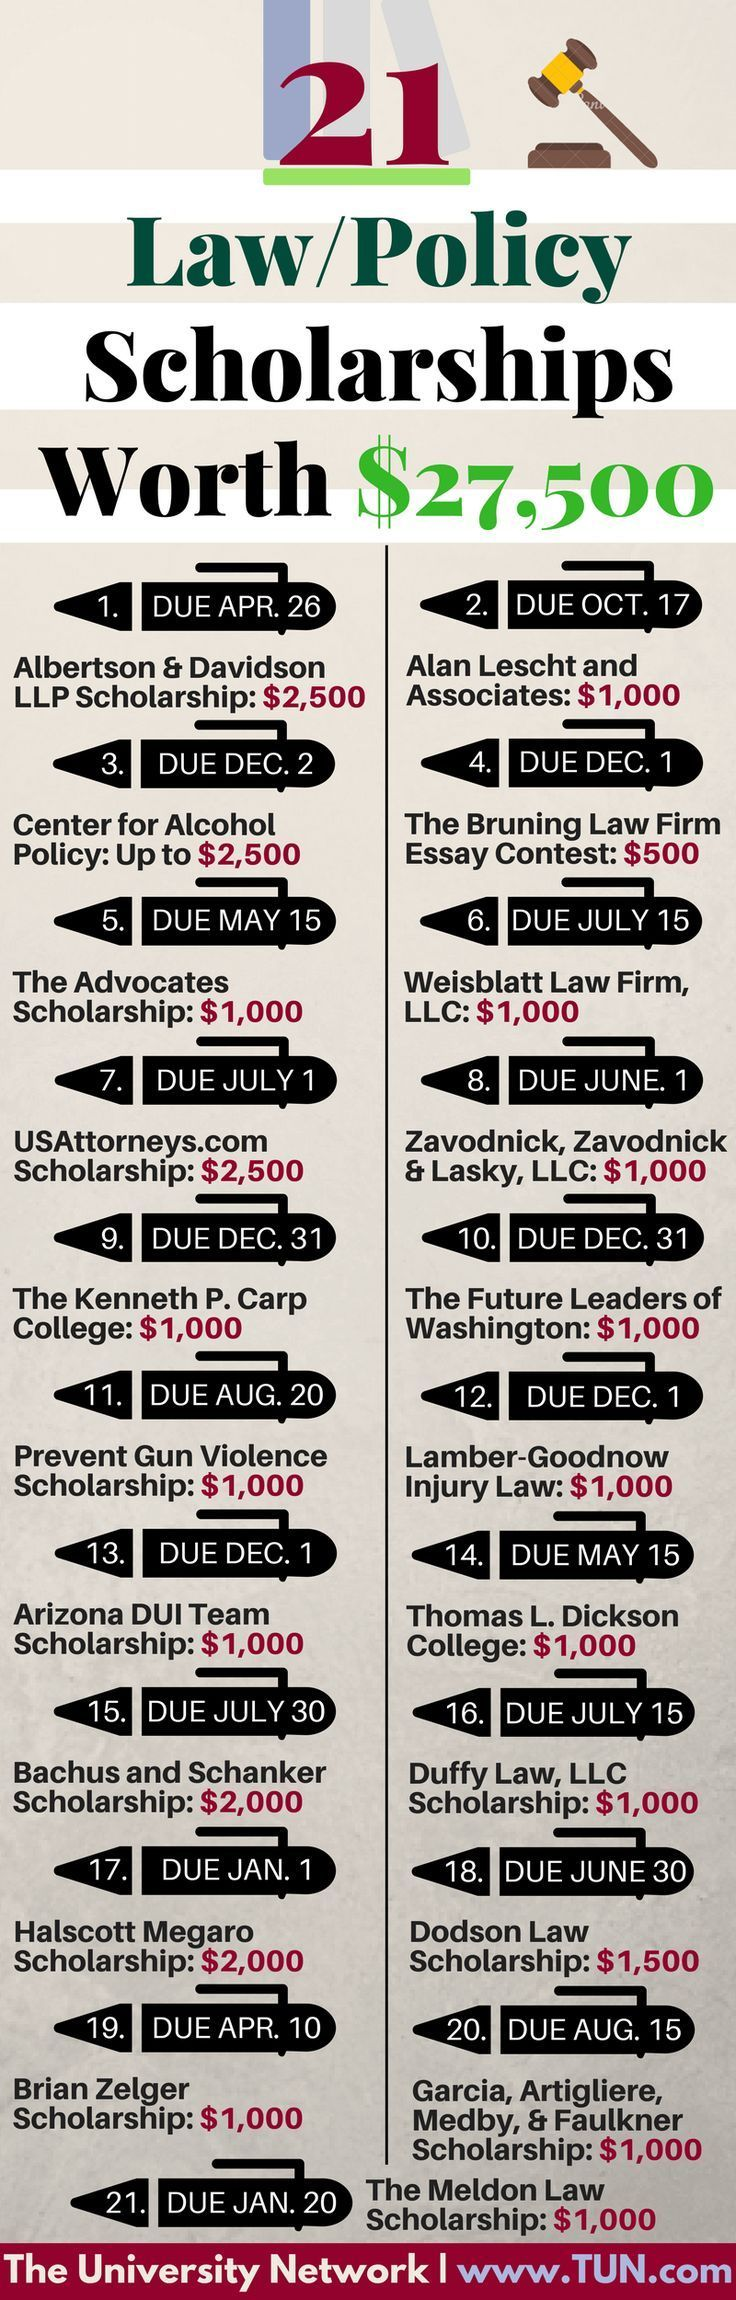 #scholarships #scholarships #scholarships #lawpolicy #interest